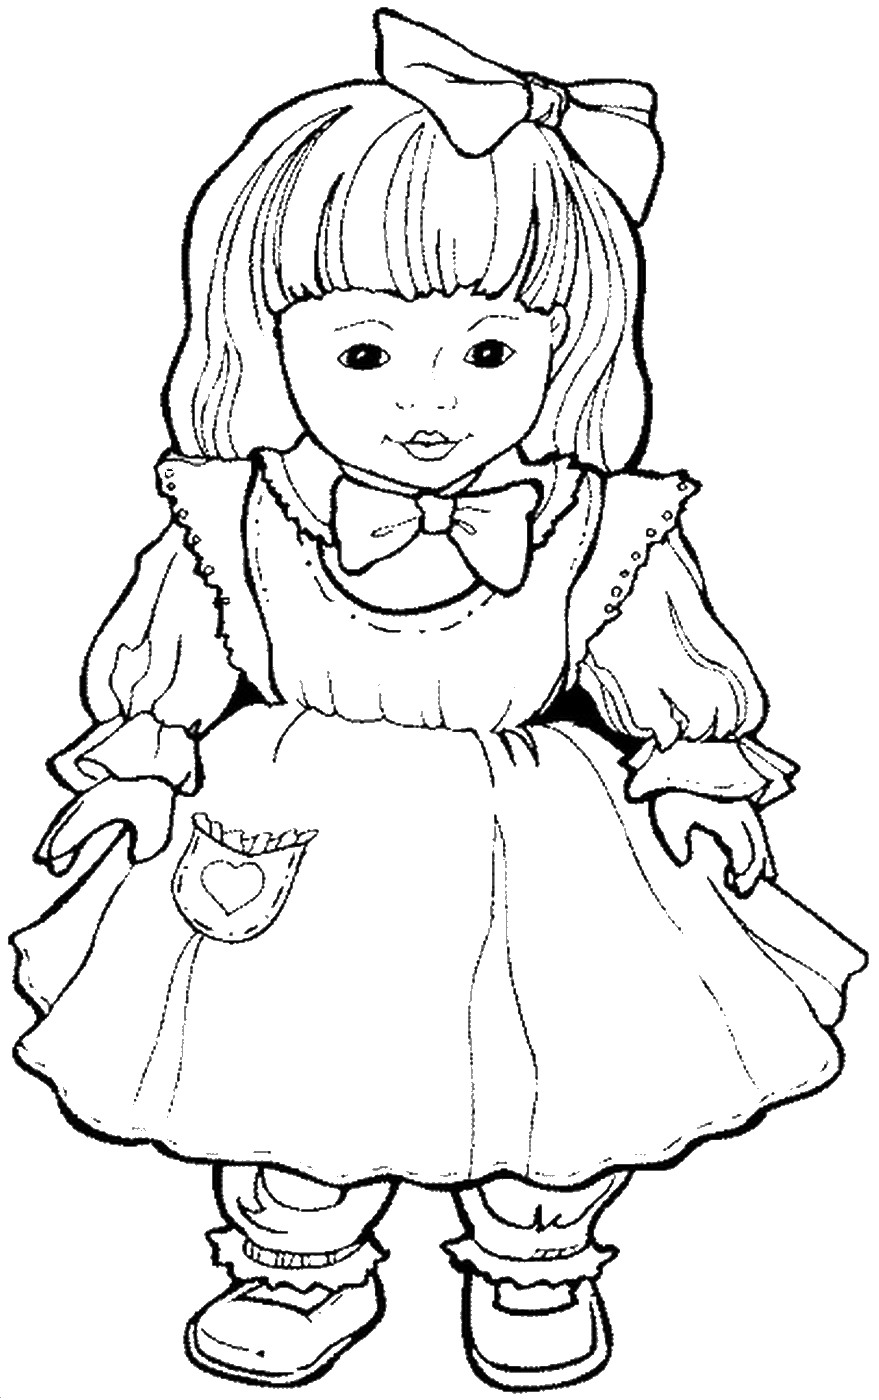 doll coloring sheets lol surprise dolls coloring pages print them for free doll sheets coloring